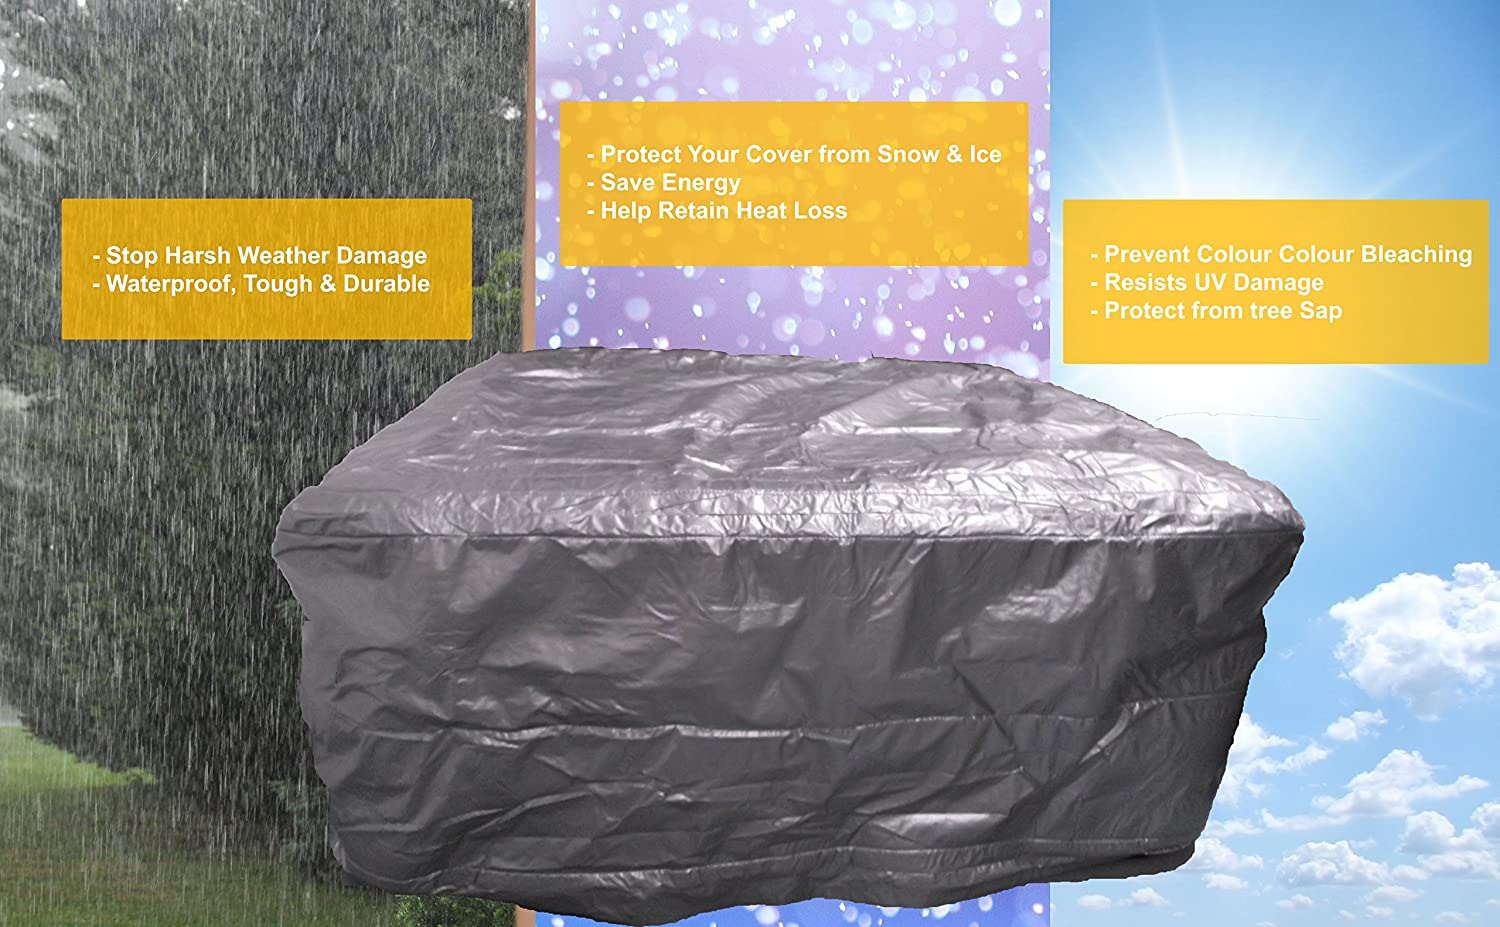 Hot Tub protection Bag, Winter Weather Proof Spa Cover (1740 x 1740 x 920) Happy Hot Tubs